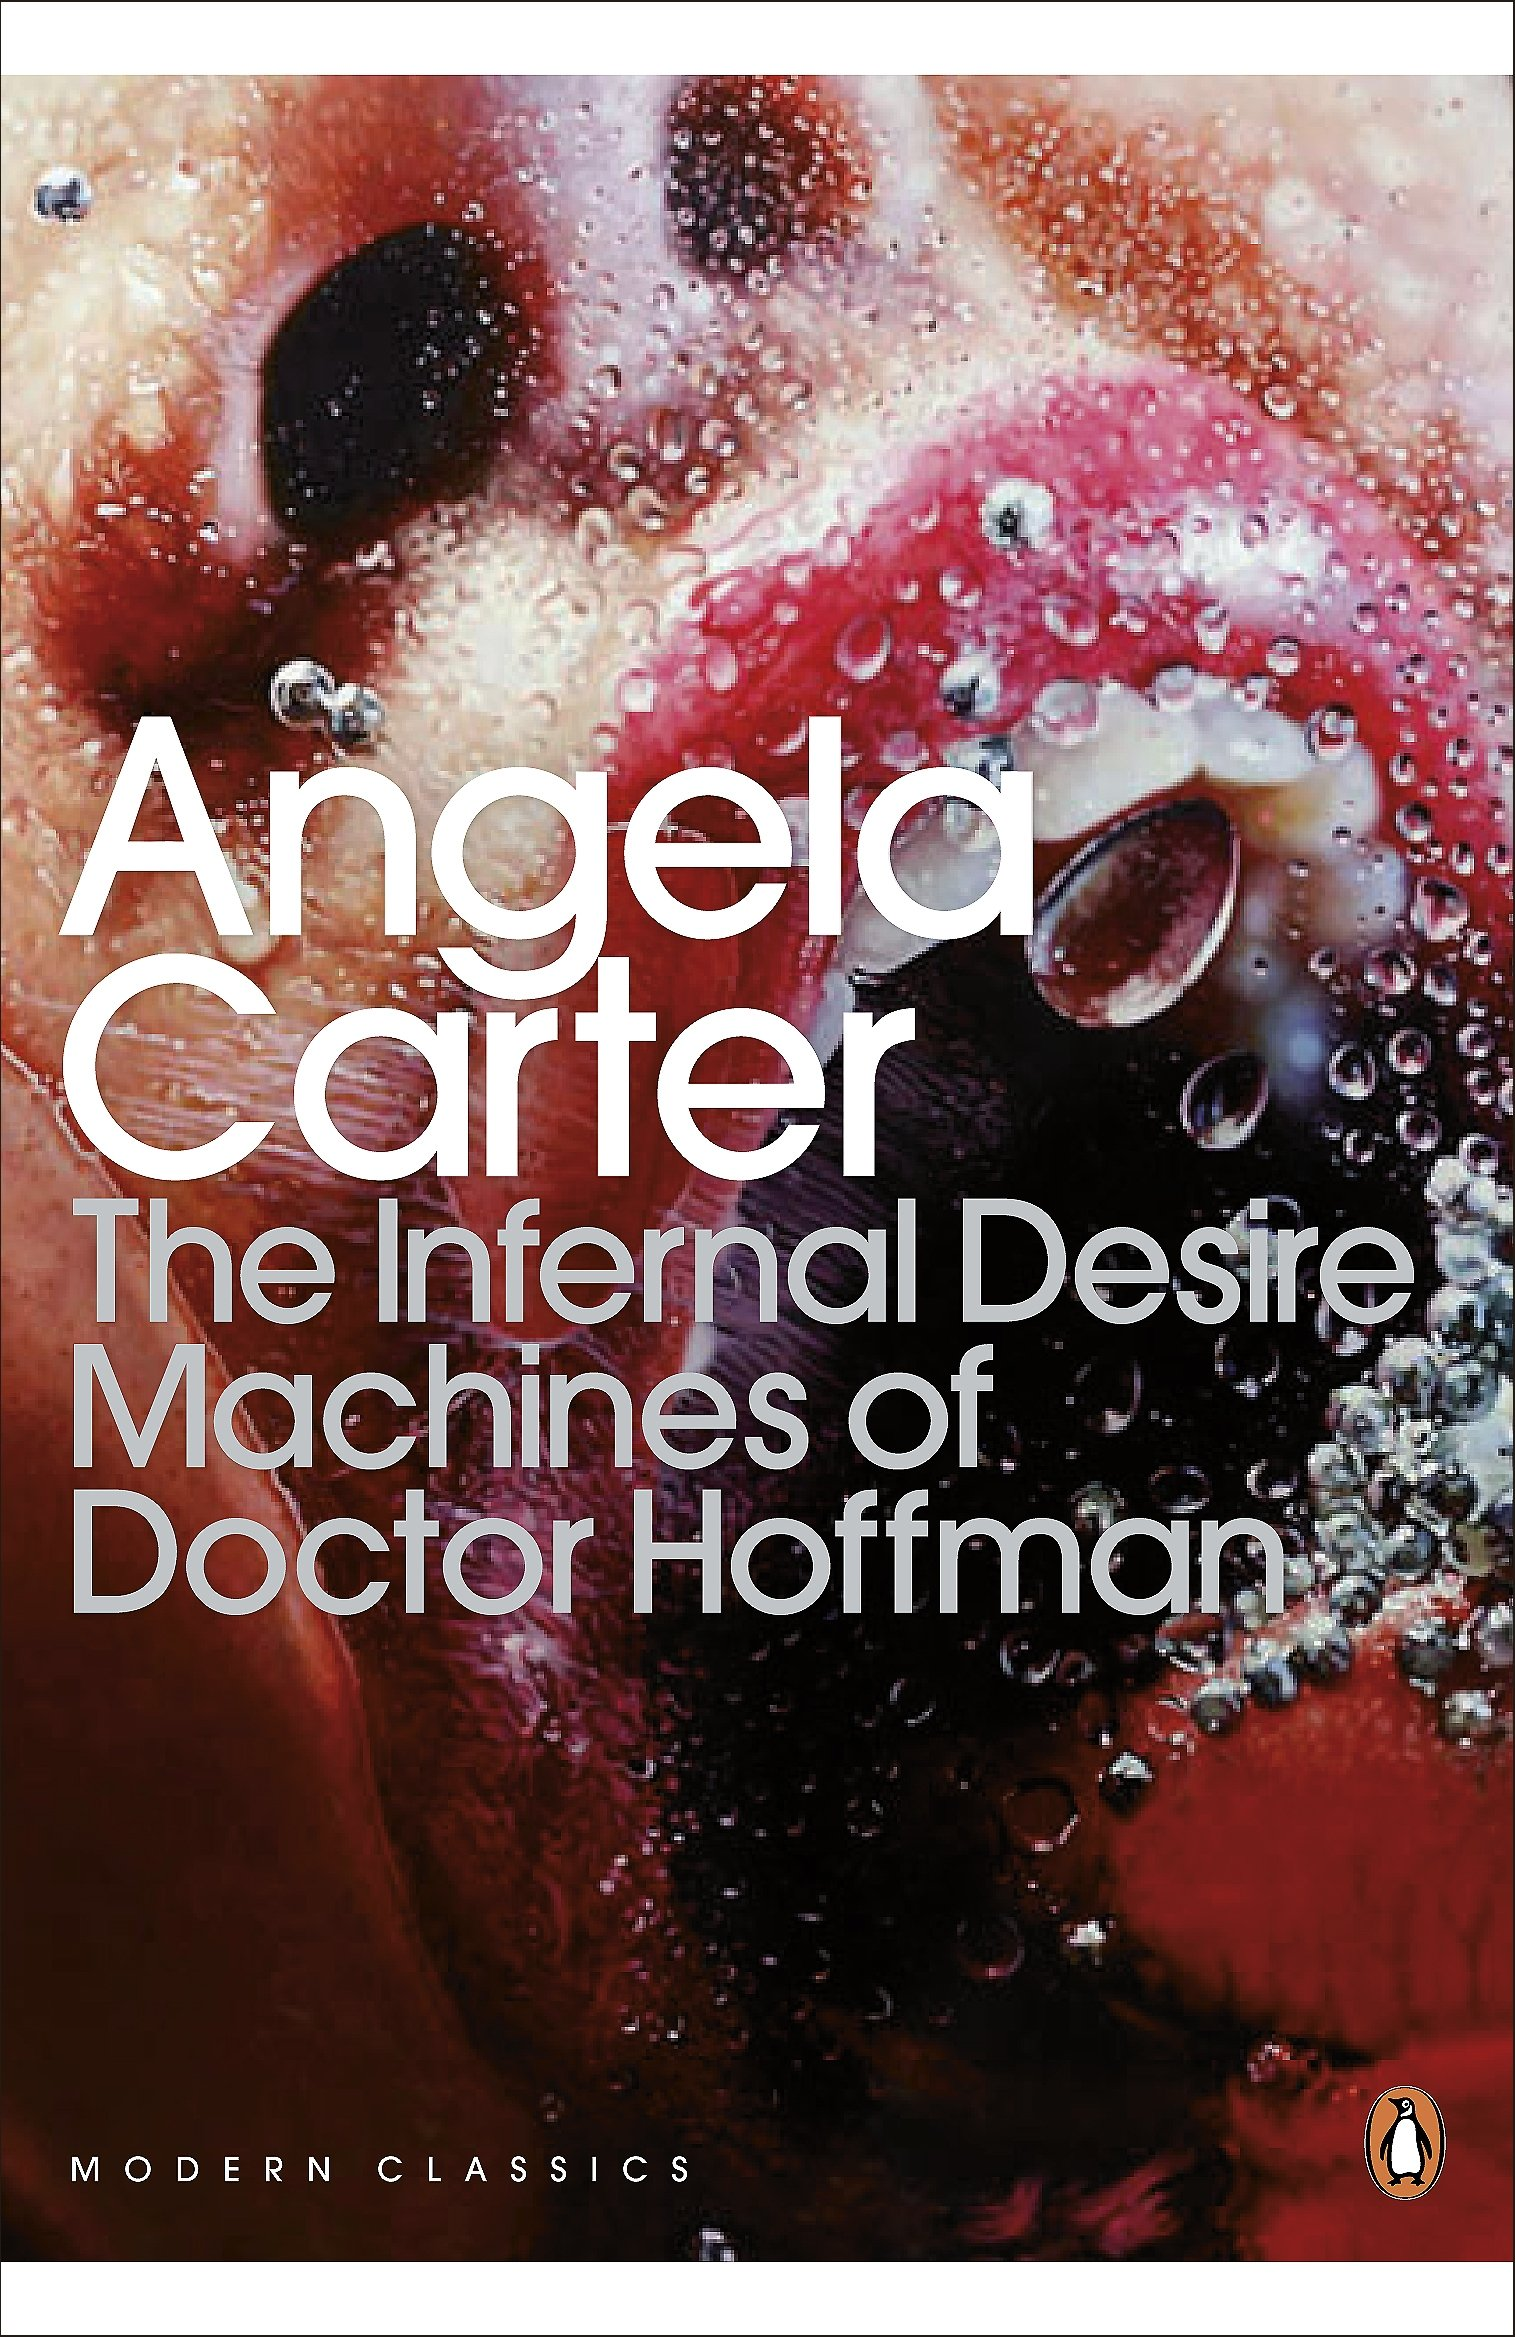 Image result for the infernal desires of doctor hoffman